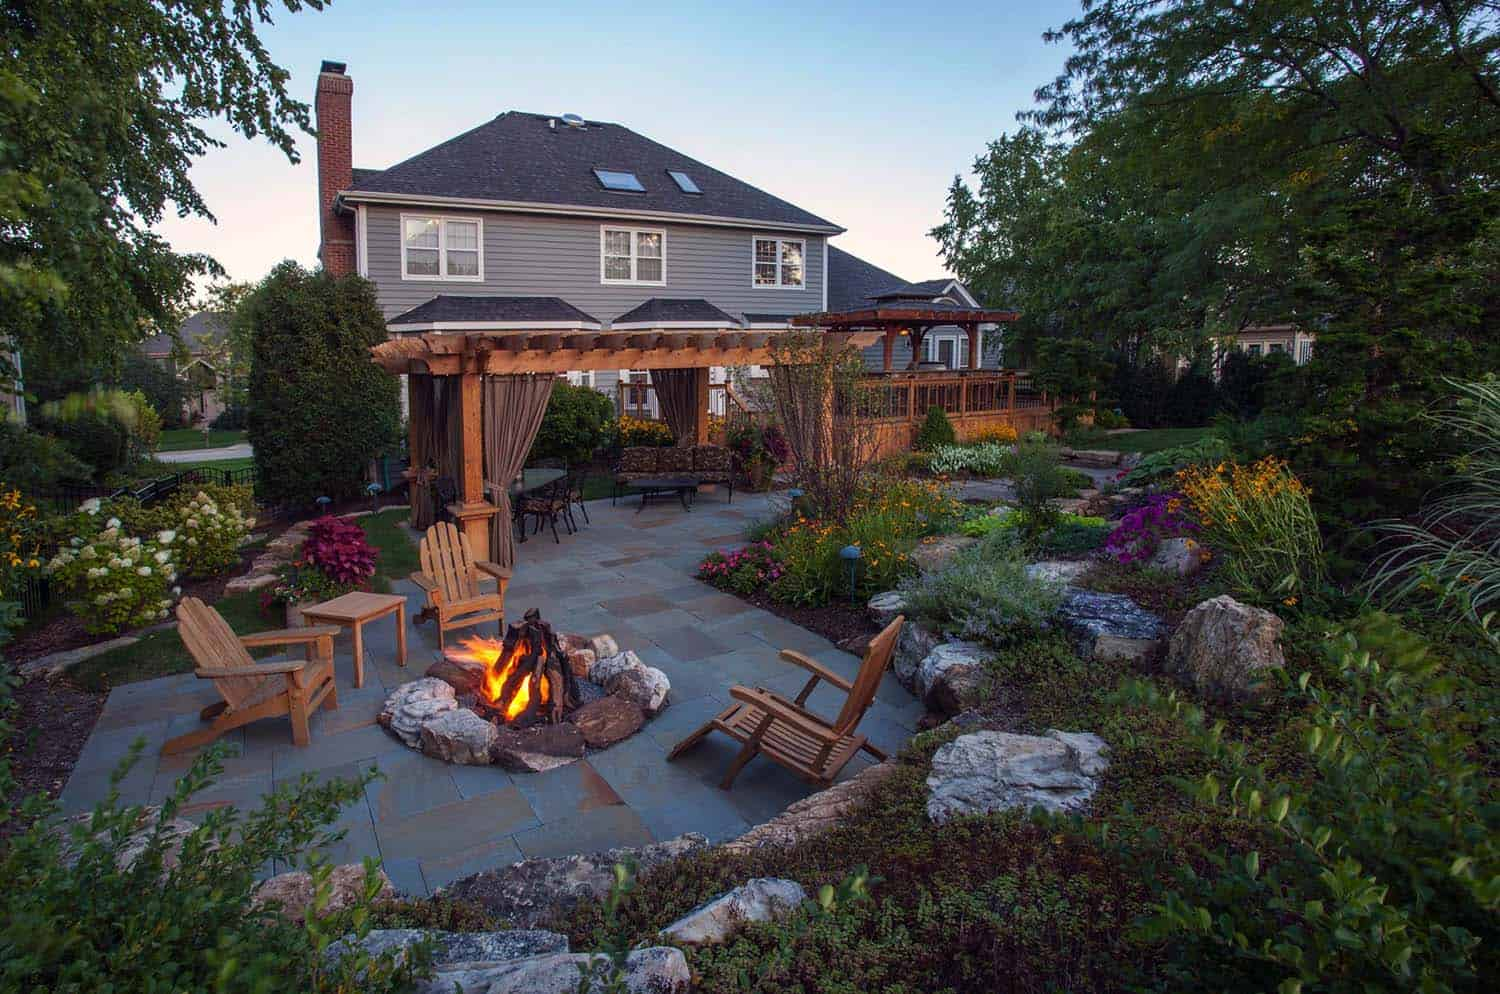 28 Inspiring Fire Pit Ideas To Create A Fabulous Backyard ... on Backyard Patio With Firepit id=32459